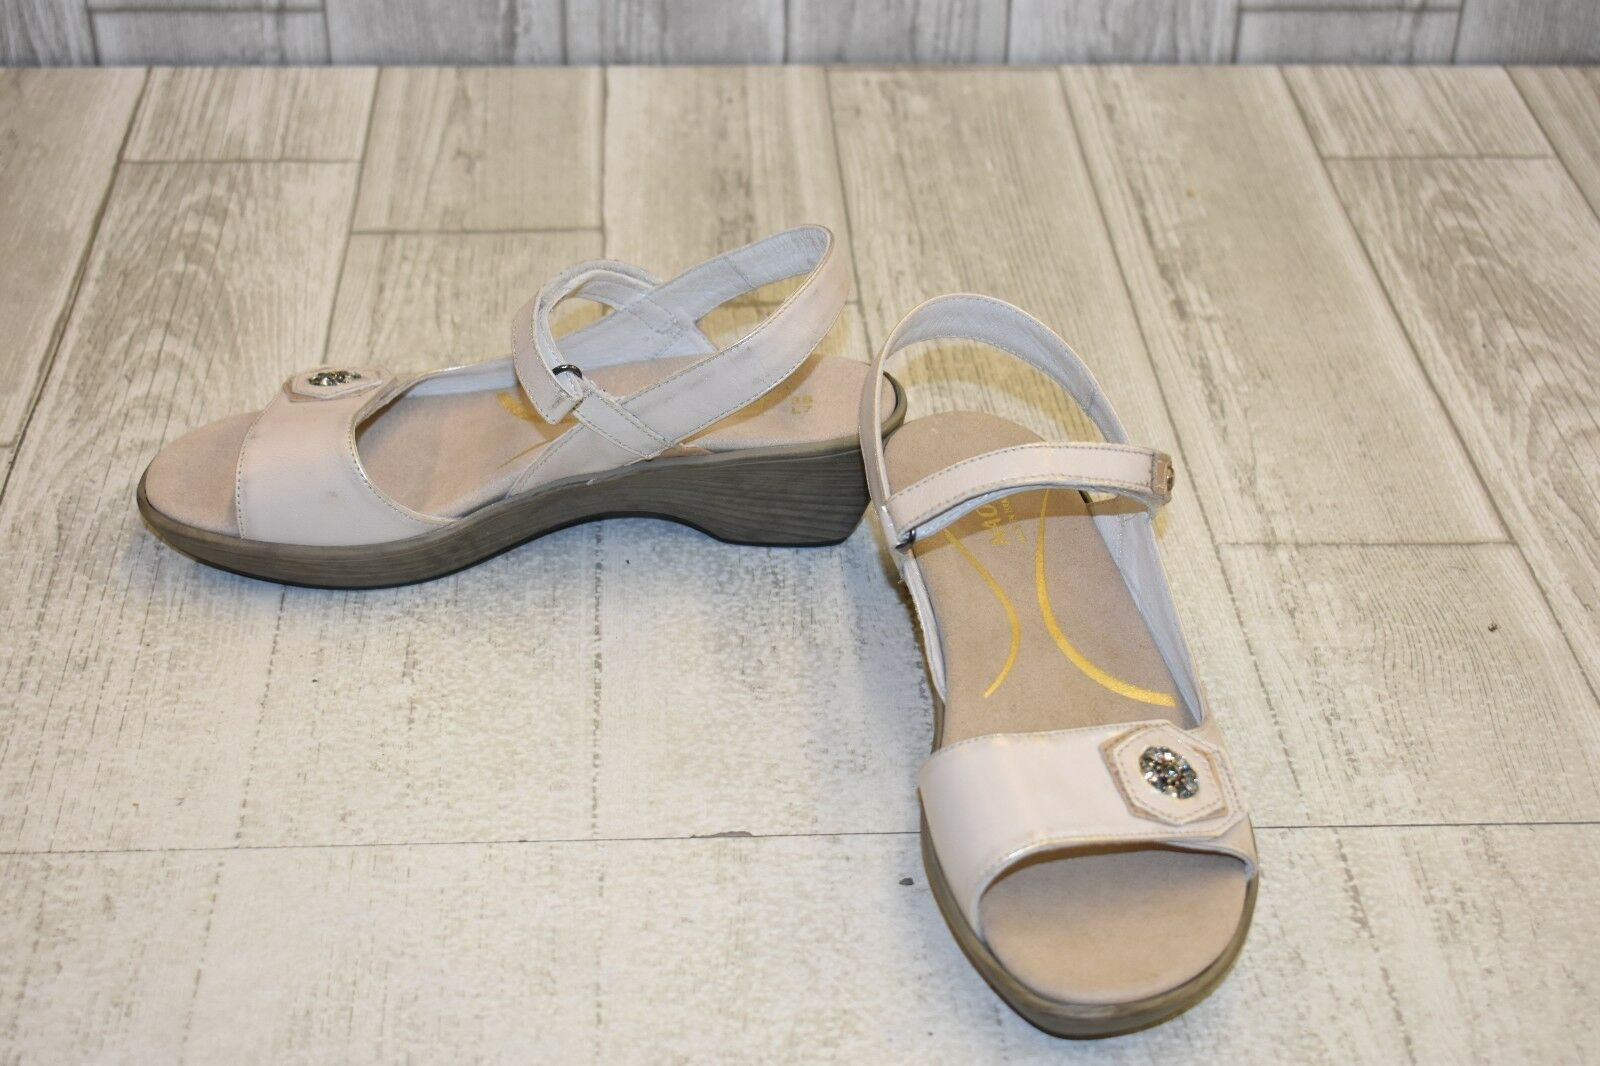 Naot Reserve Sandals - - - Women's Size 7 - Dusty Silver Champagne a6bee2